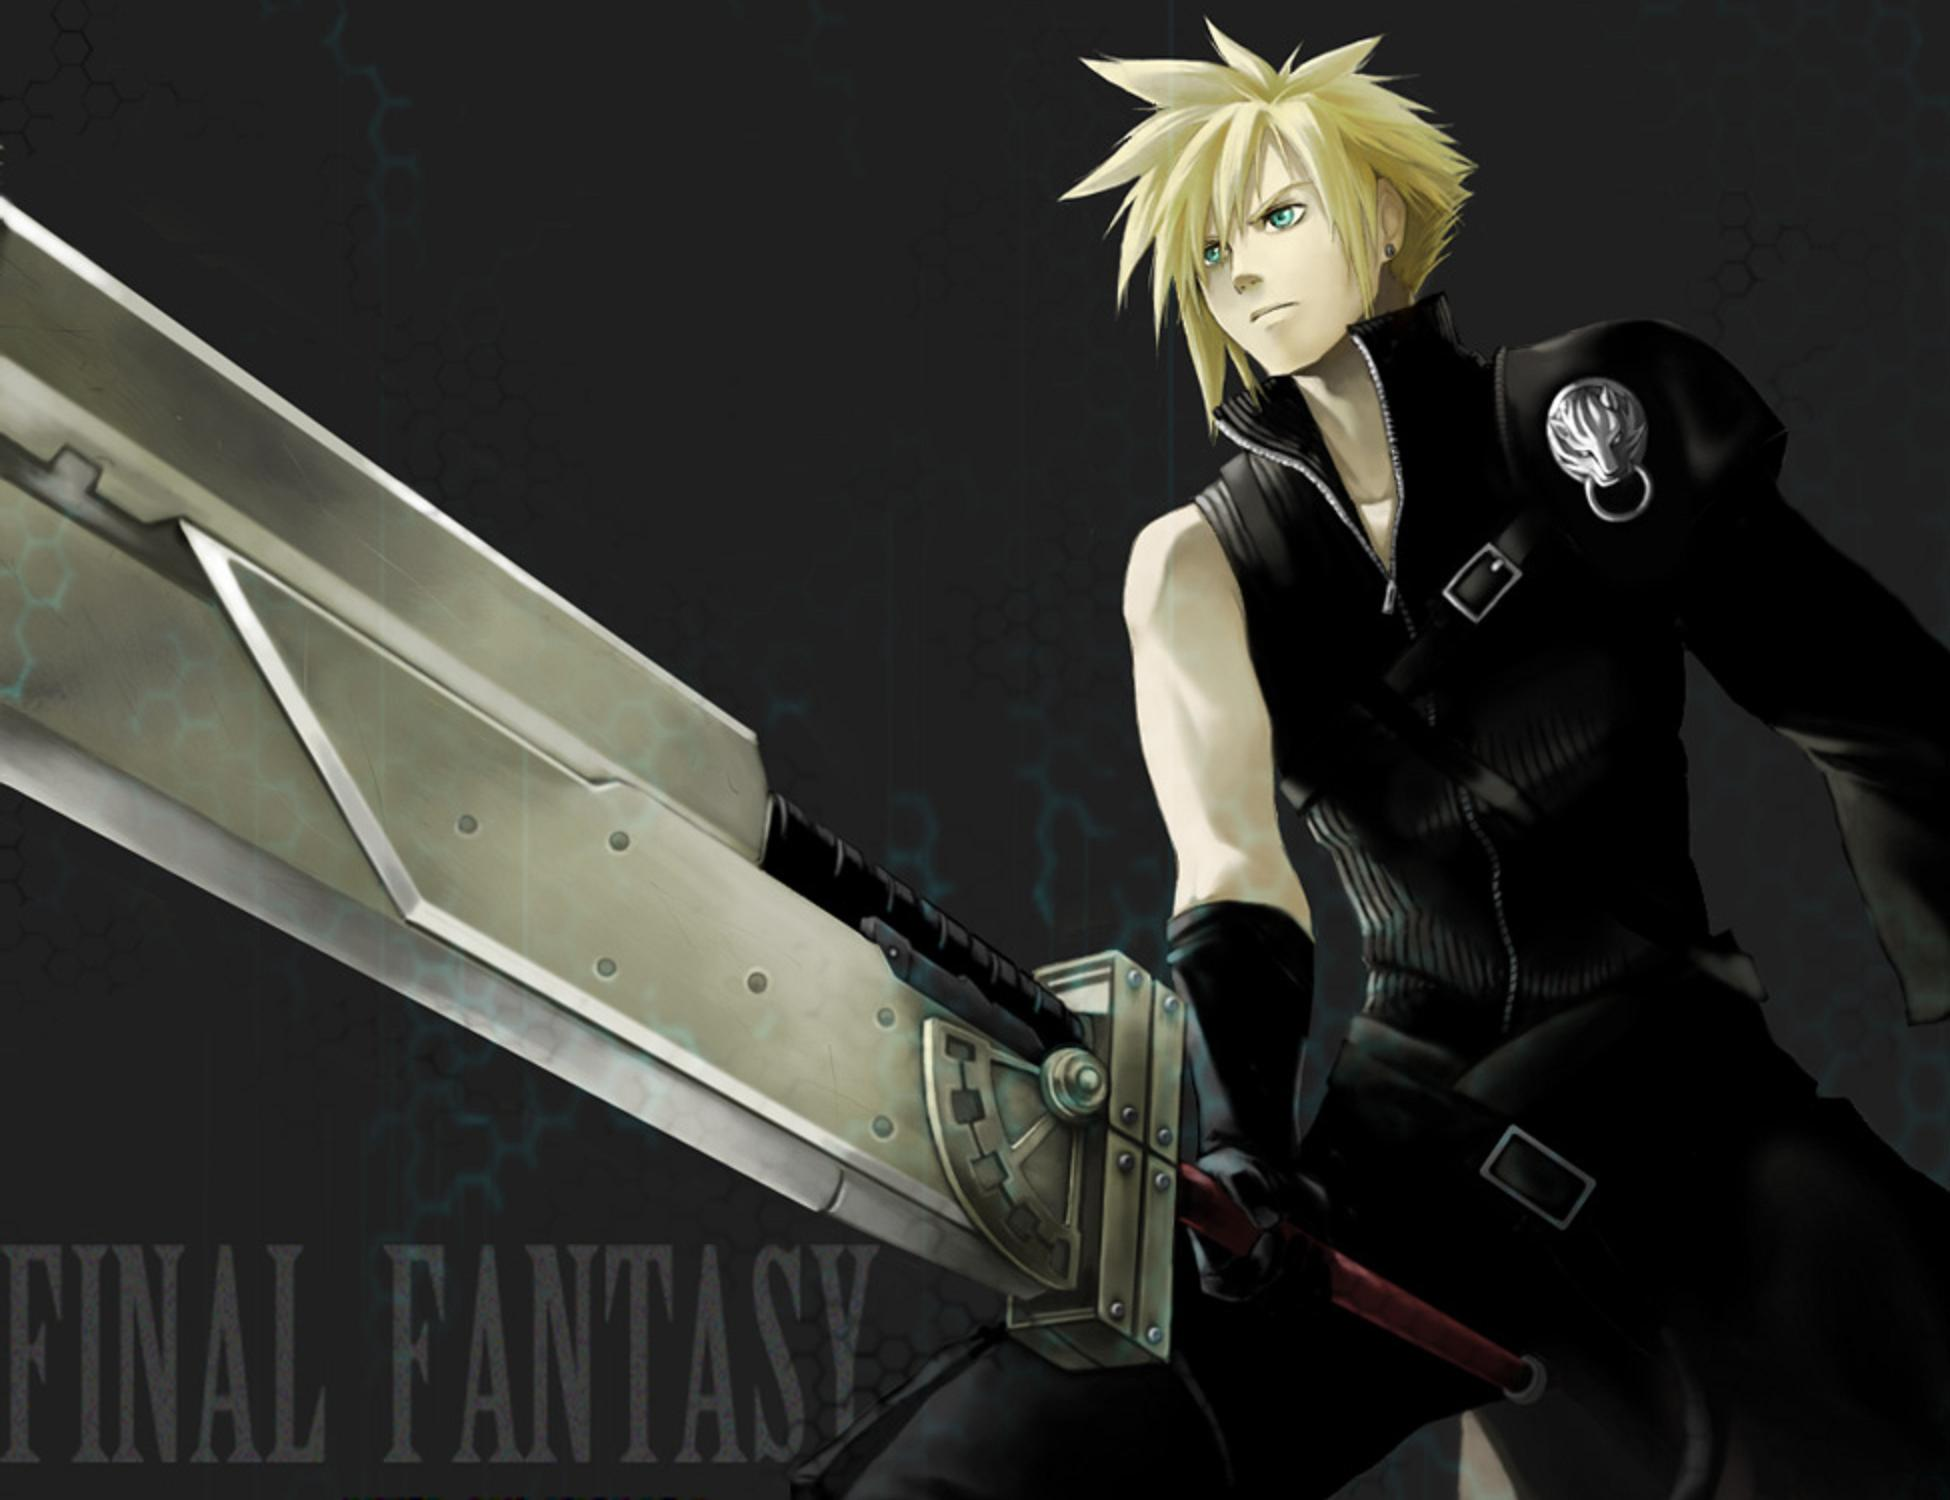 Free Download Cloud Strife 1950x1500 For Your Desktop Mobile